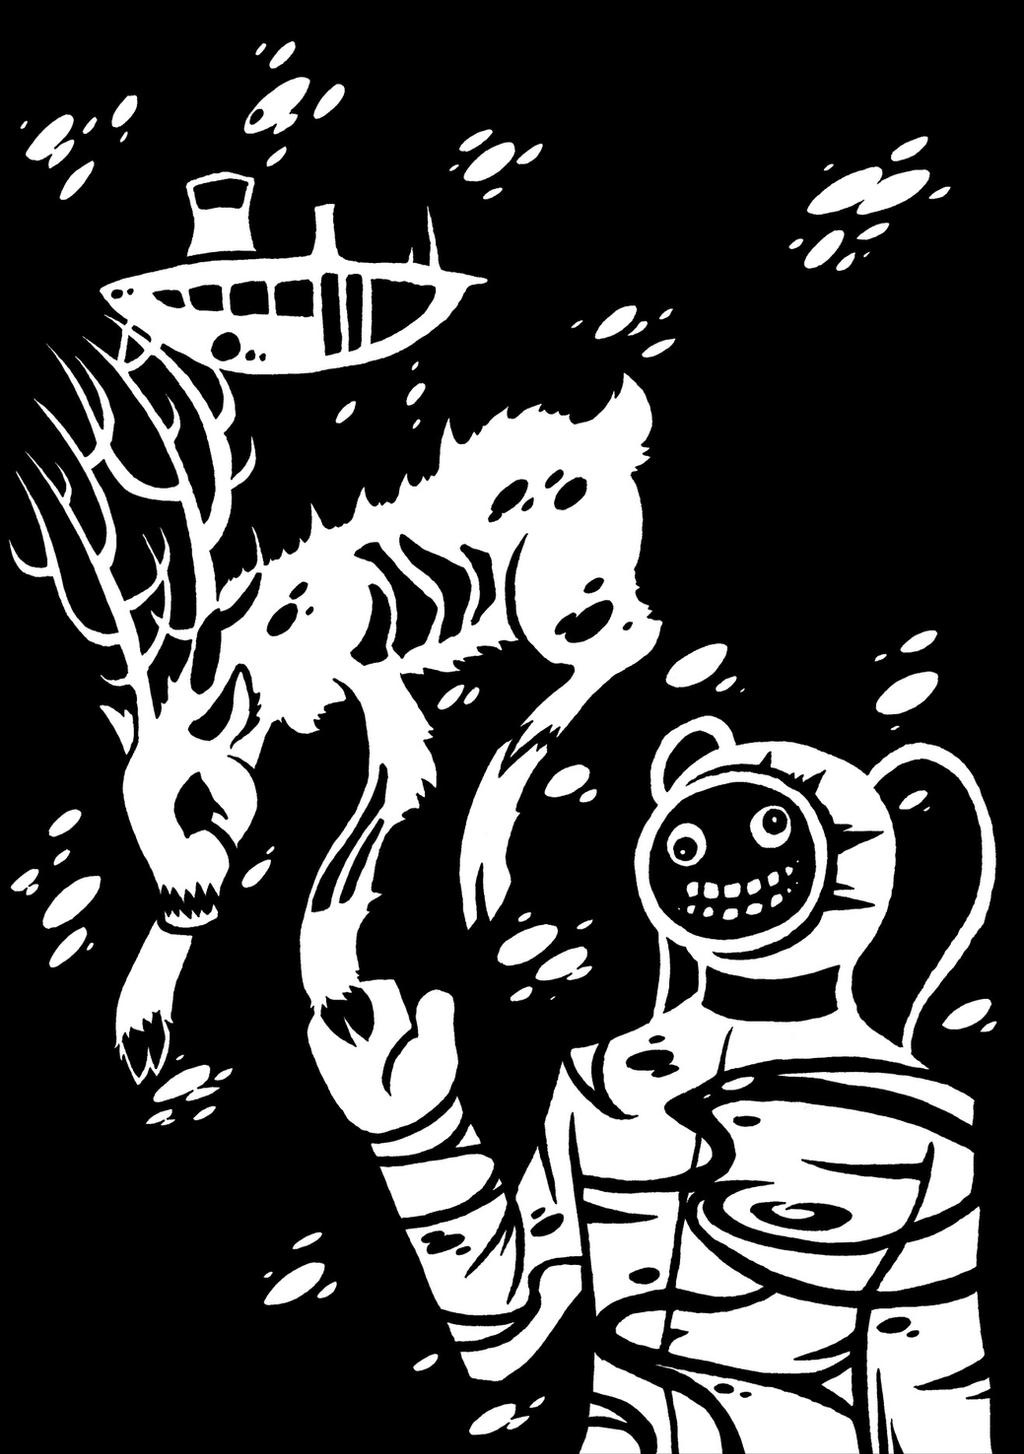 Taking Art Requests - SCP Foundation